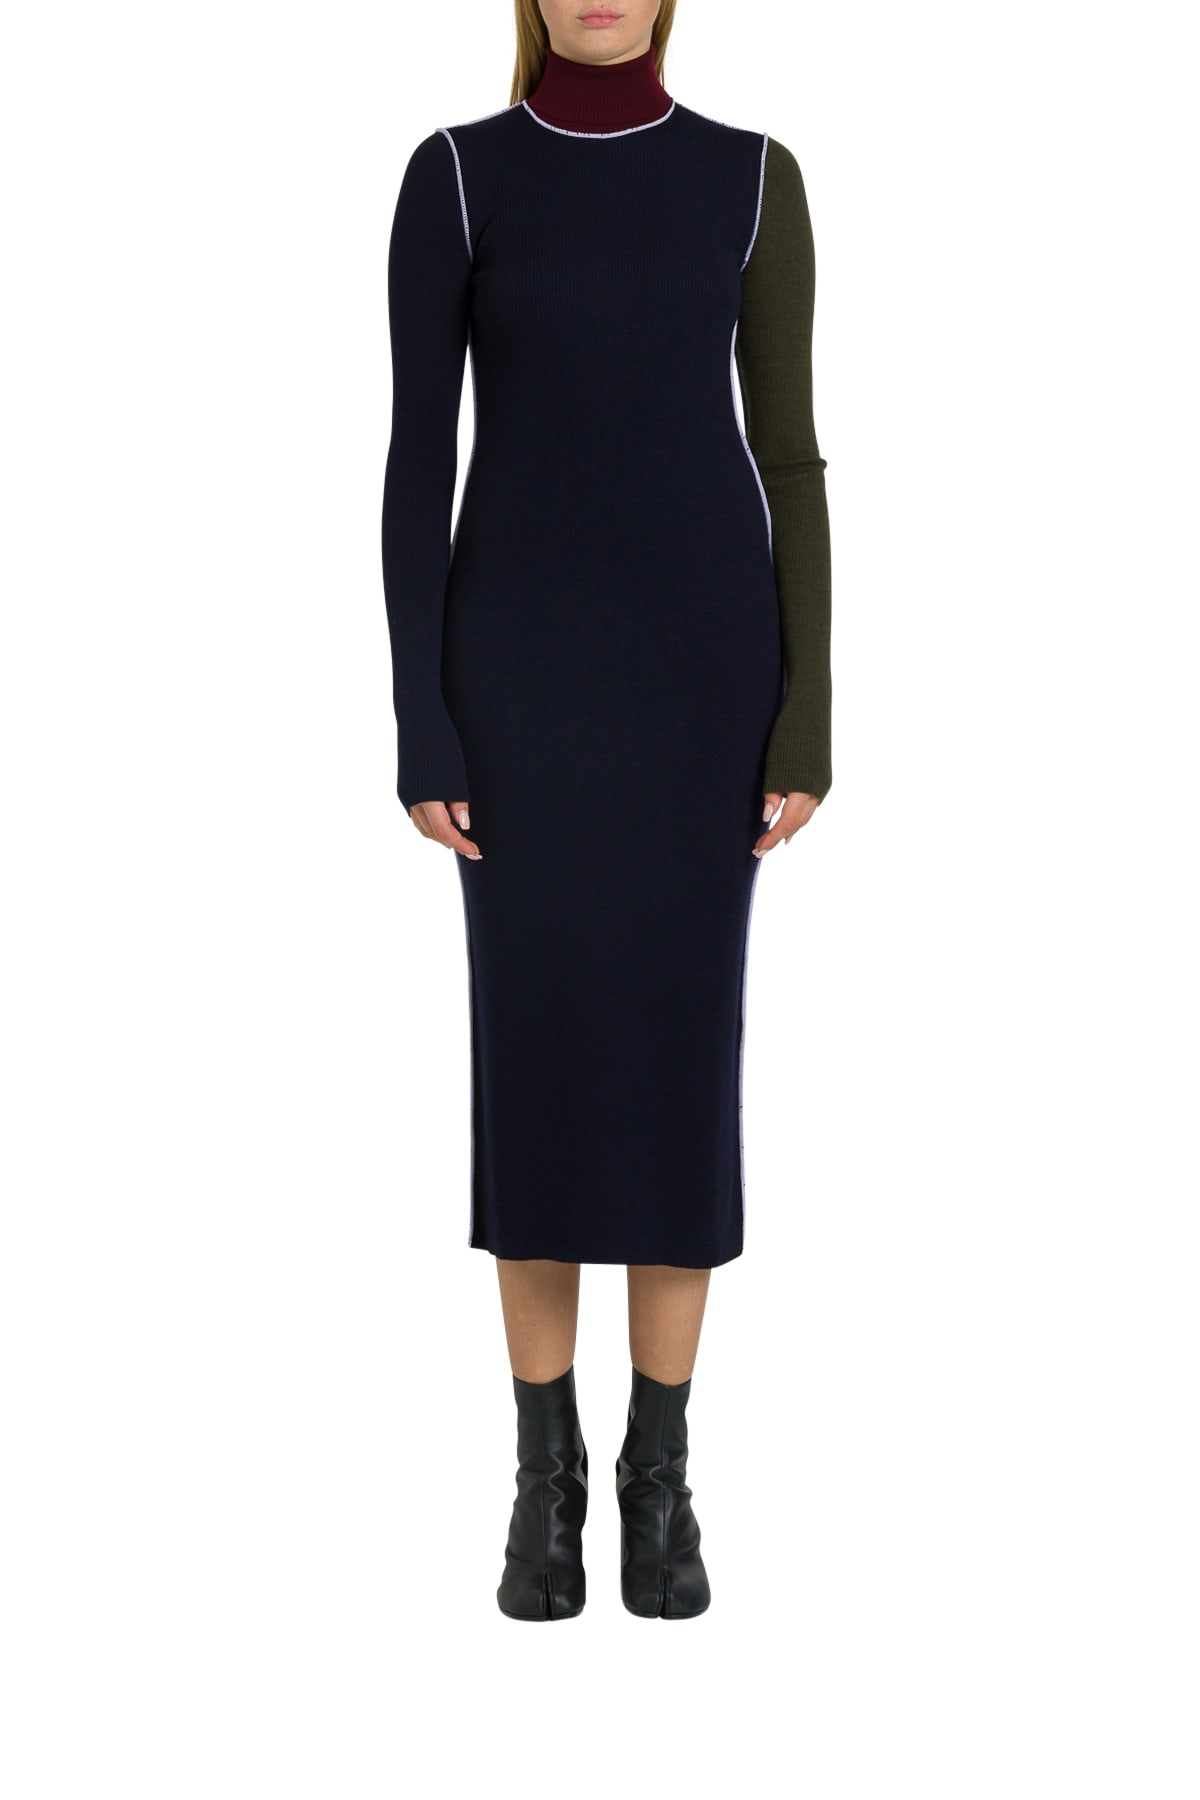 Maison Margiela Color-blocked Midi Wool Turtleneck Dress